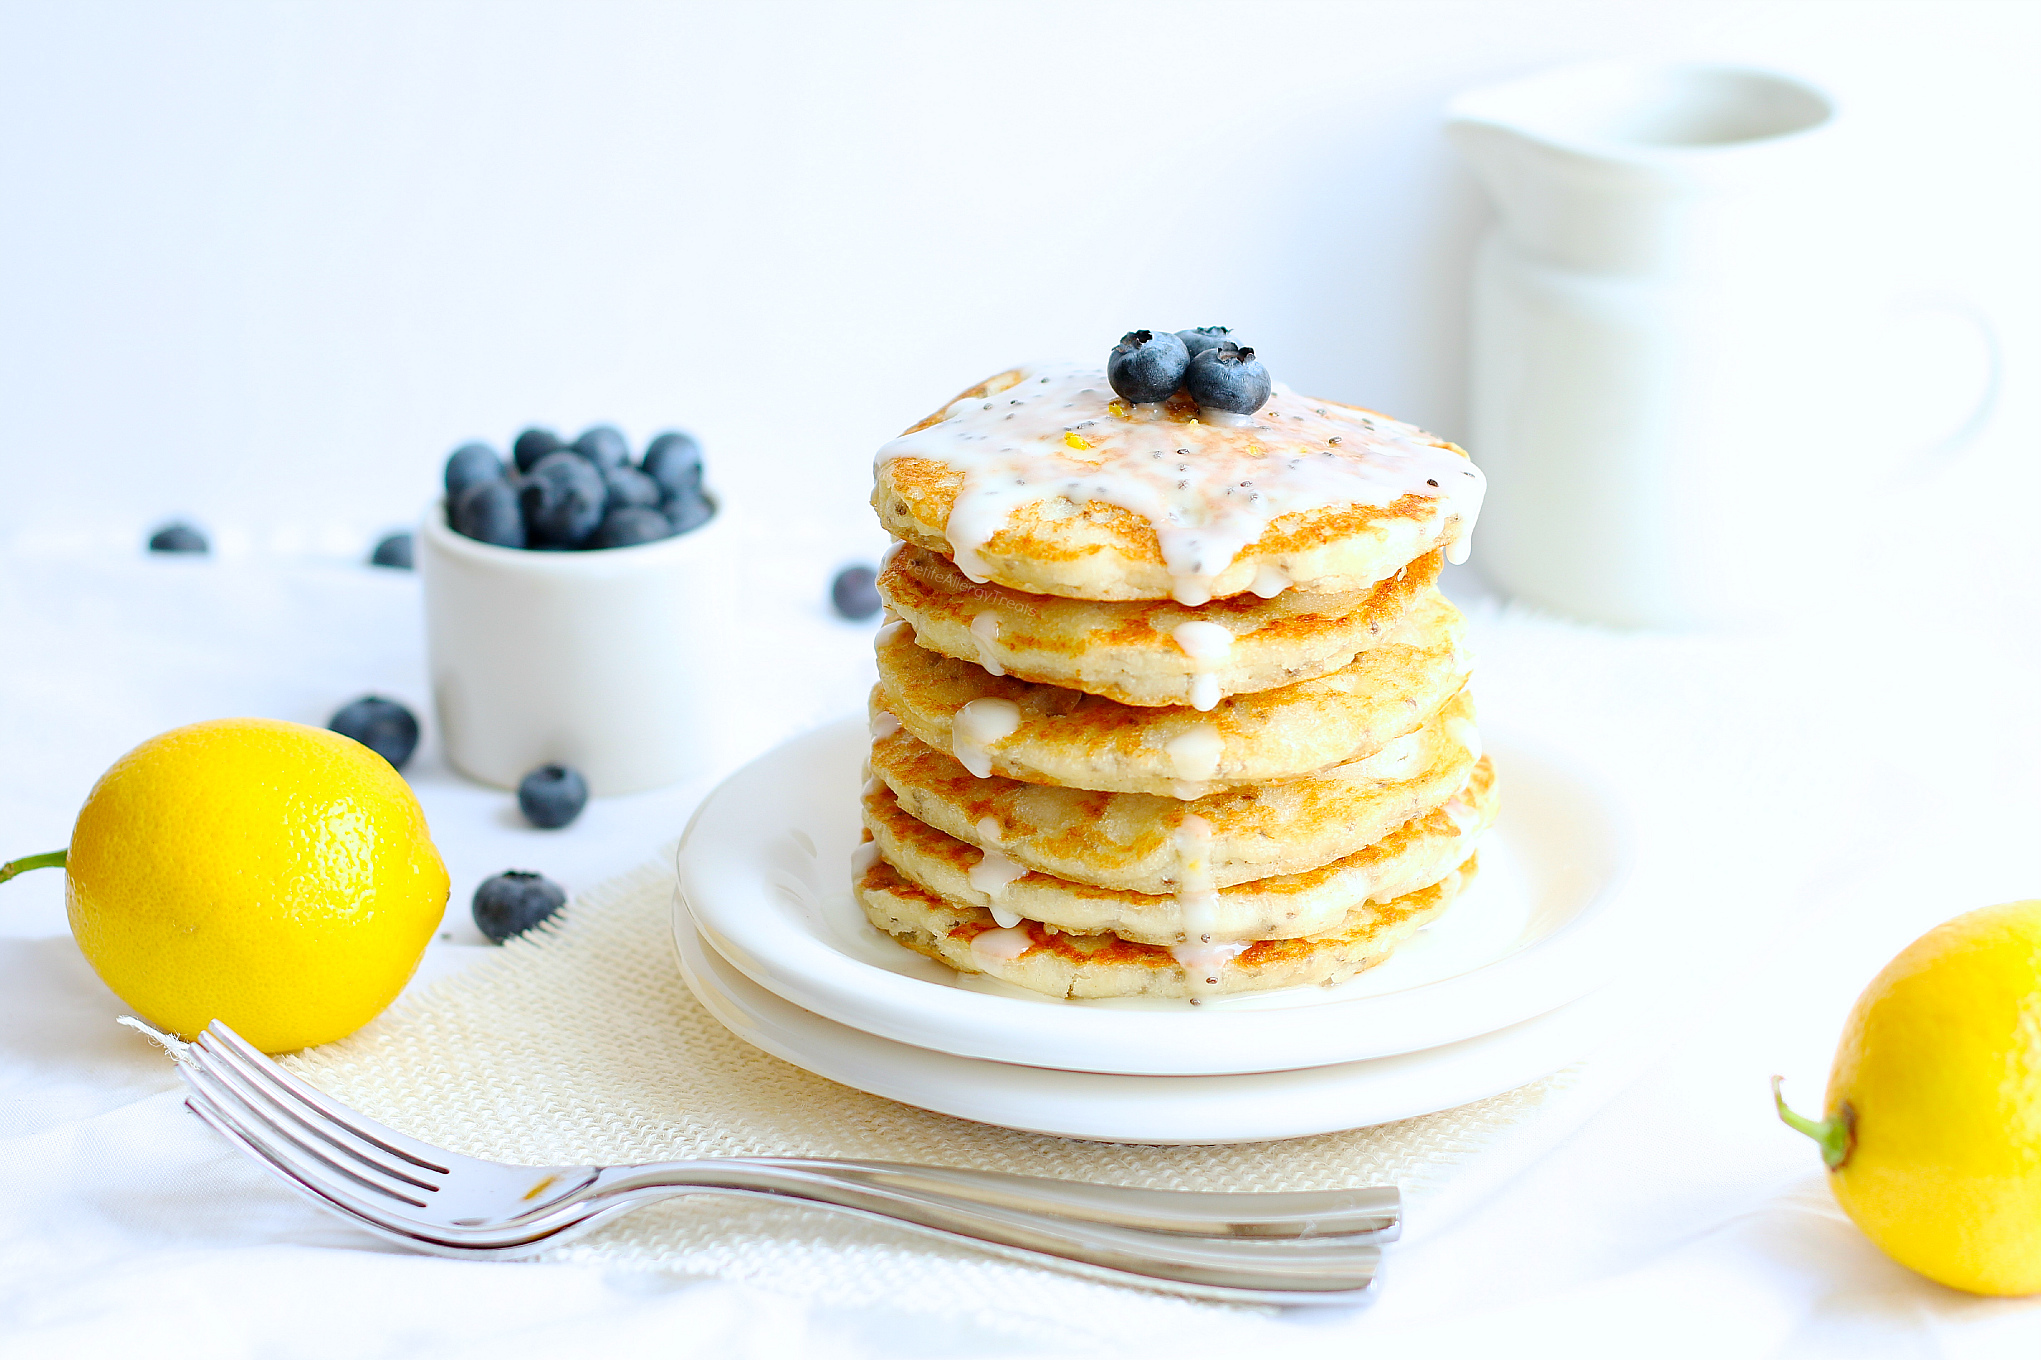 Vegan Lemon Pancakes (gluten free dairy free Vegan) recipe- Easy gluten free lemon chia pancakes, like lemon poppy seed pancakes but better. Super food allergy friendly too-egg free, dairy free and nut free. #glutenfree #dairyfree #eggfree